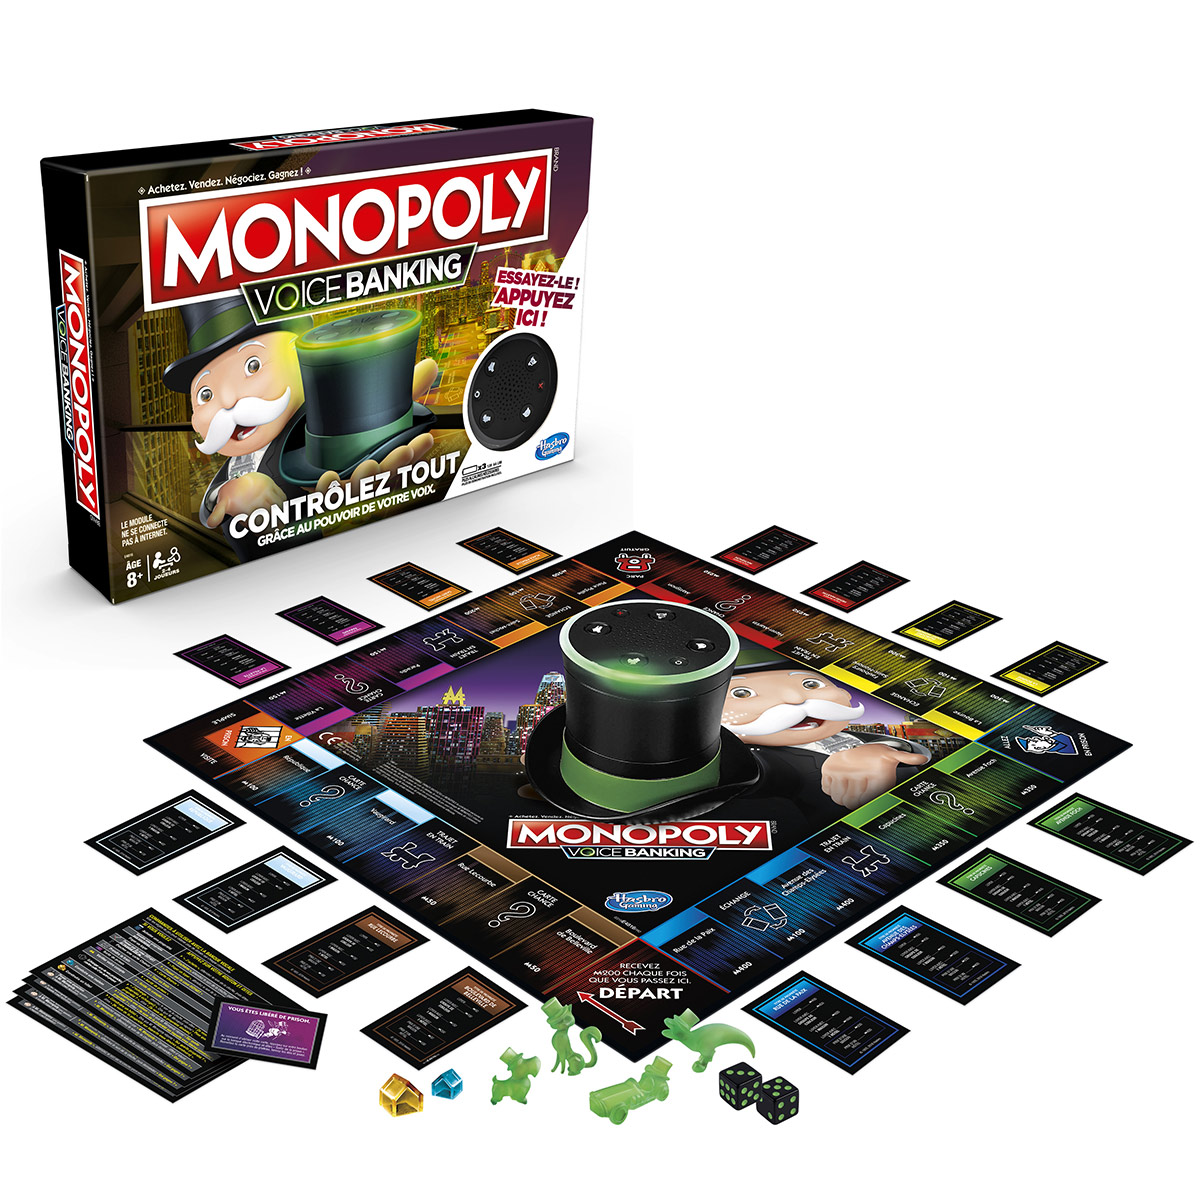 monopoly_voice_banking_2_5dd8126077a48.jpg